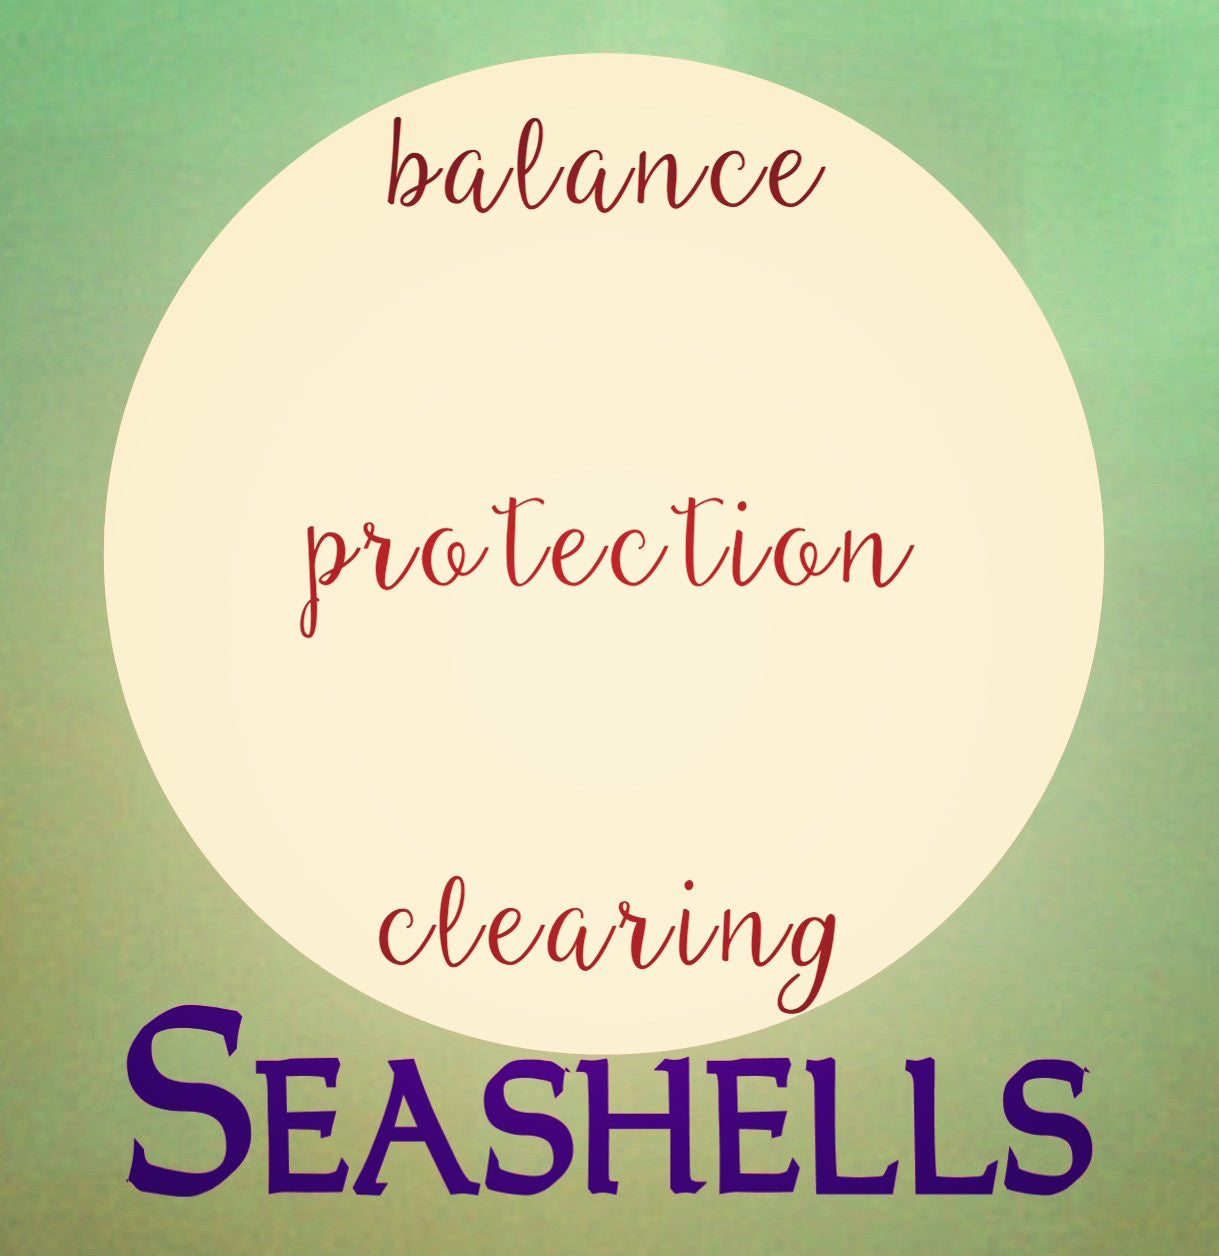 Seashells - balance, protection, clearing